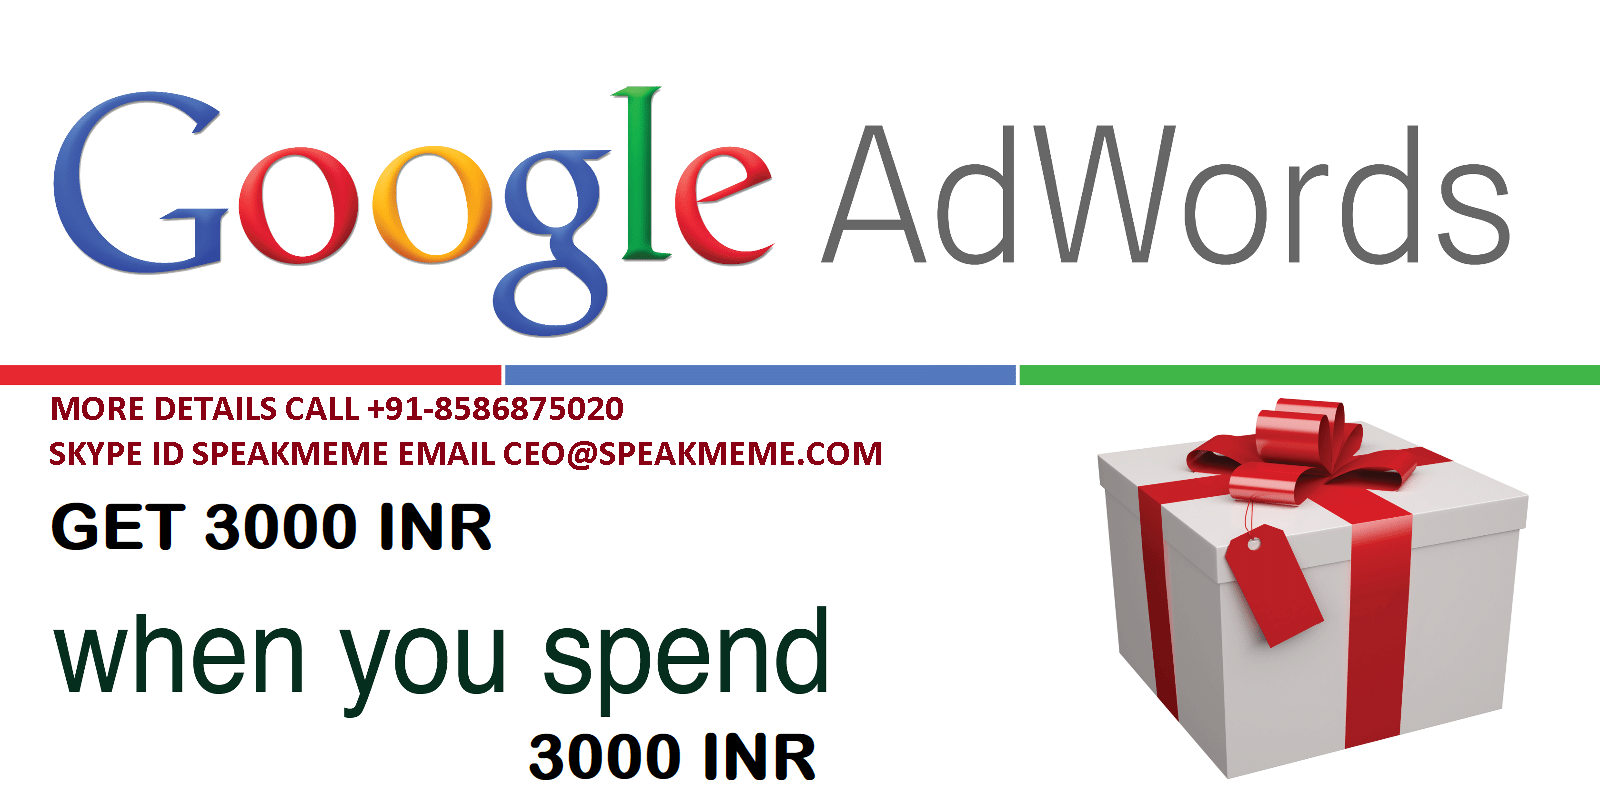 Adwords Coupon 3000 INR - Buy Adwords Coupon 3000 INR - Voucher Ad